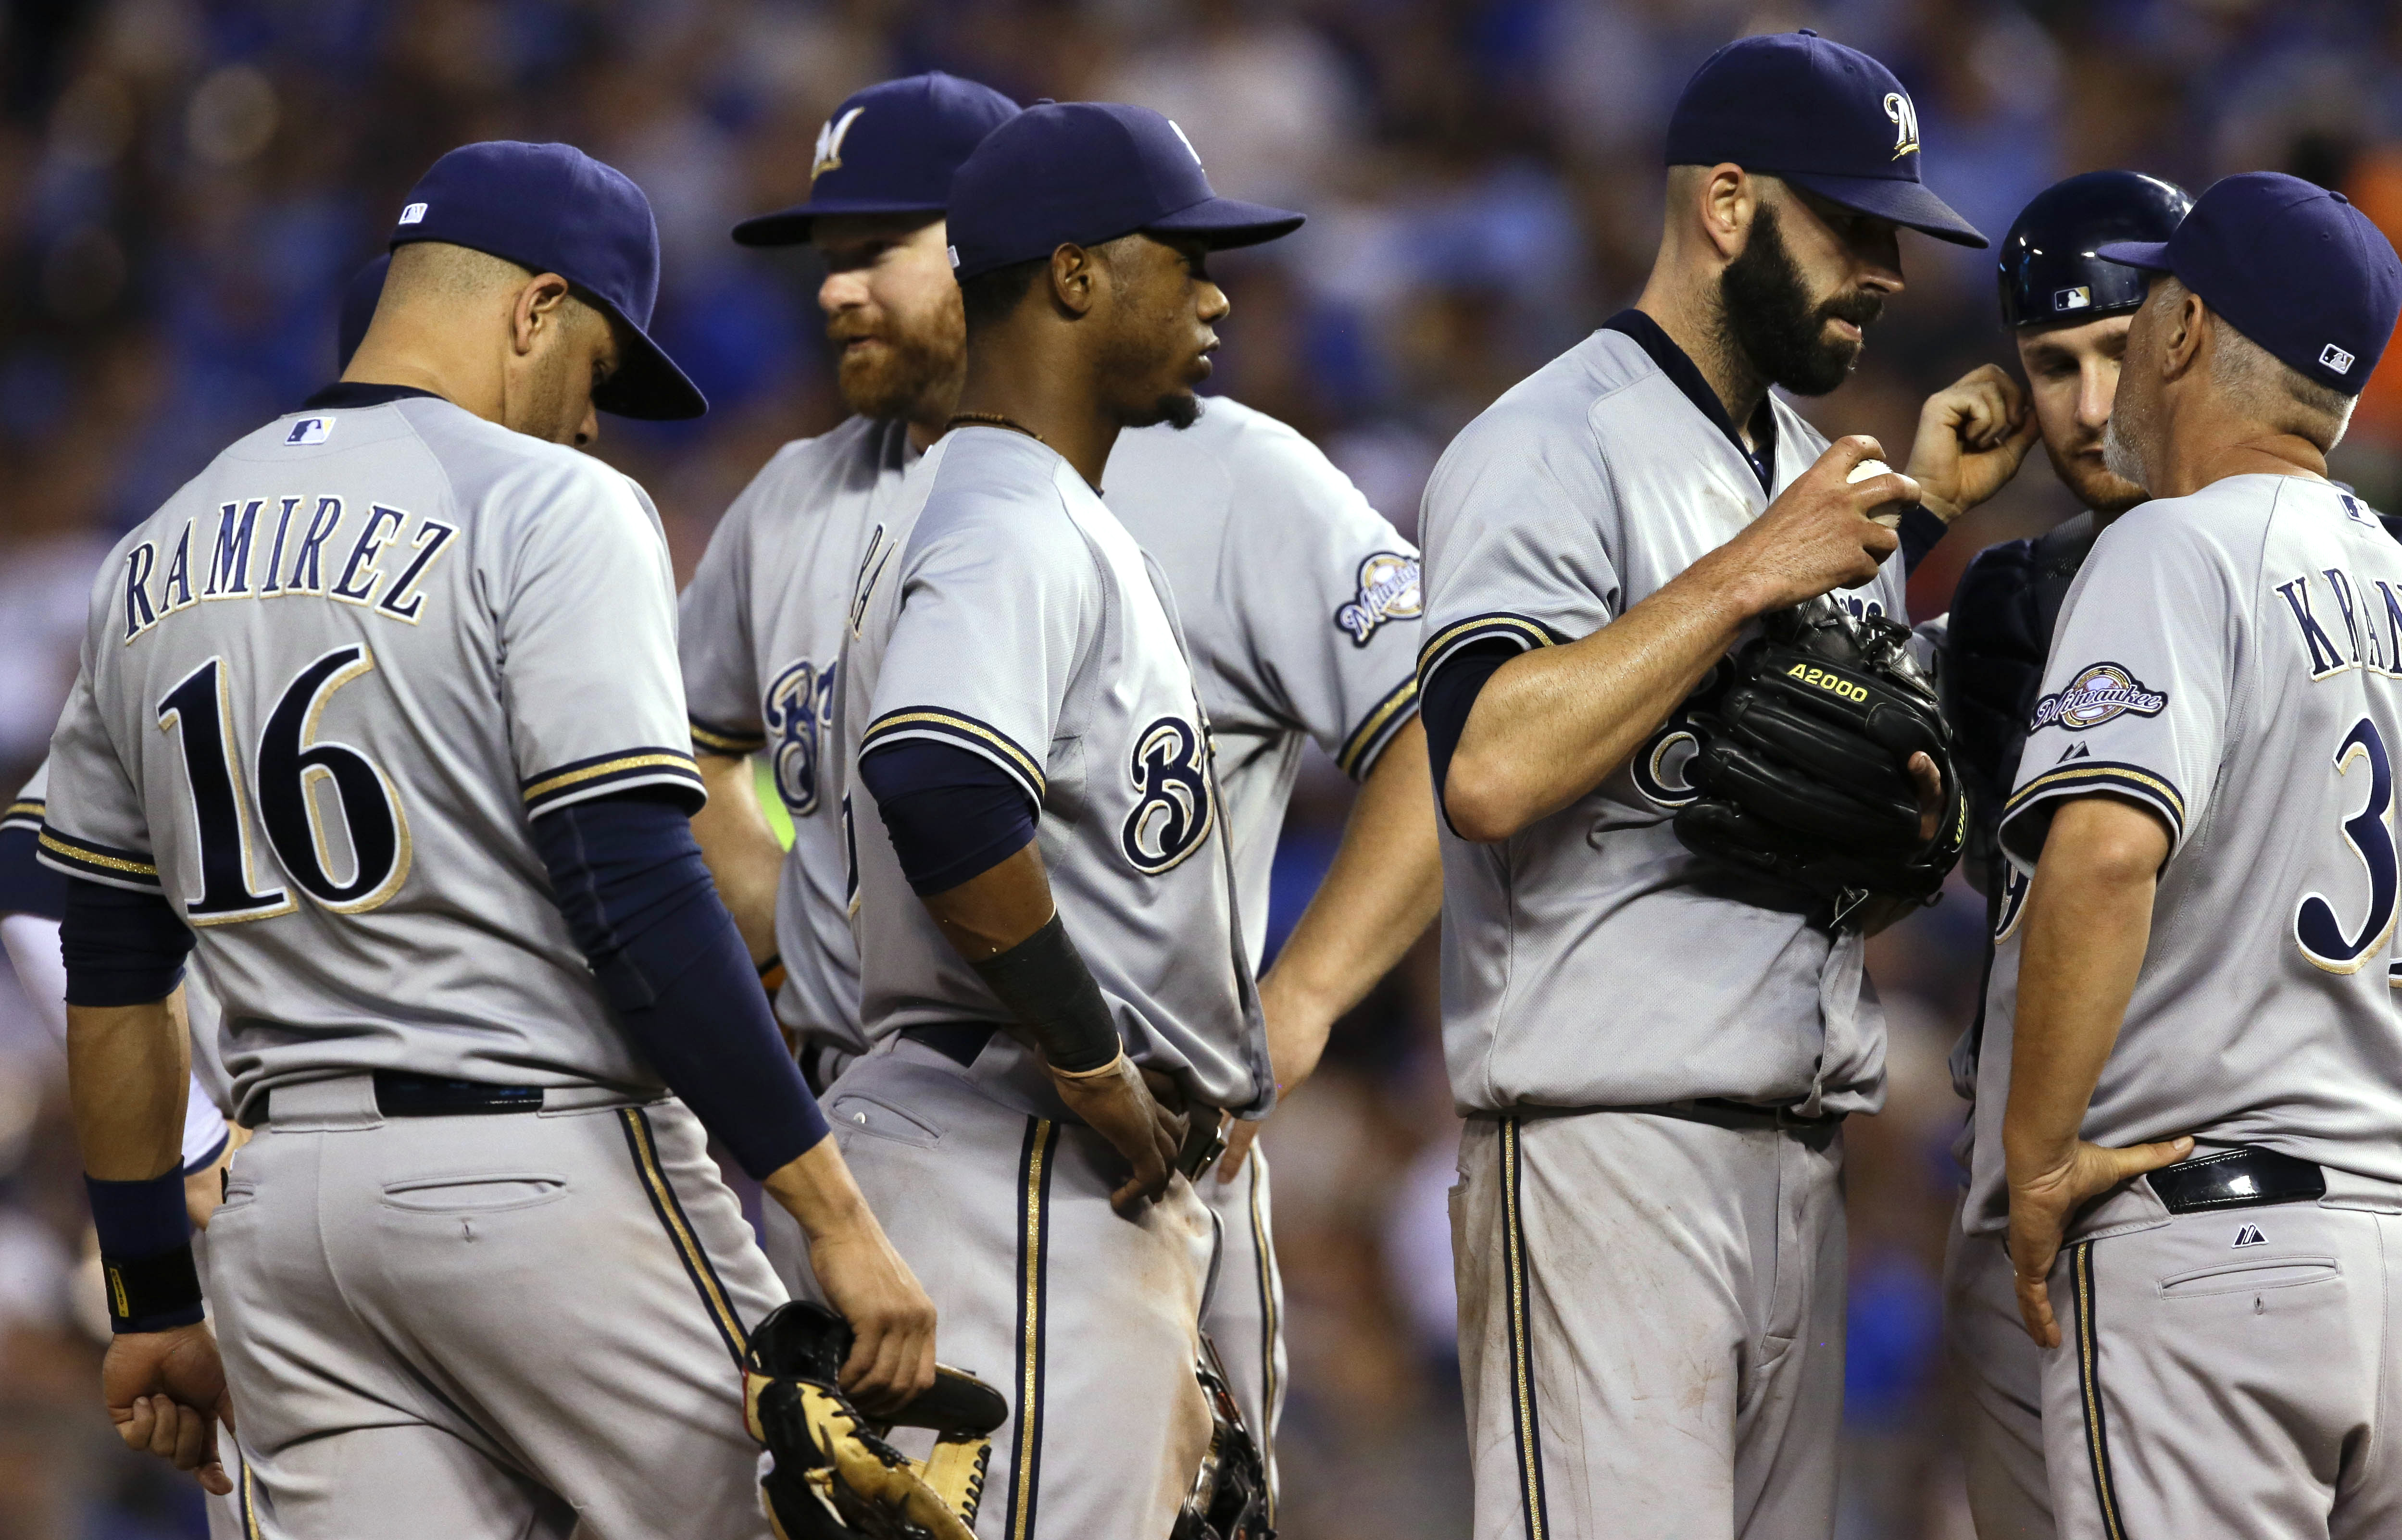 \Milwaukee Brewers pitching coach Rick Kranitz, right, calls a mound meeting with starting pitcher Mike Fiers and the rest of the infield during the fifth inning of a baseball game against the Kansas City Royals at Kauffman Stadium in Kansas City, Mo., We